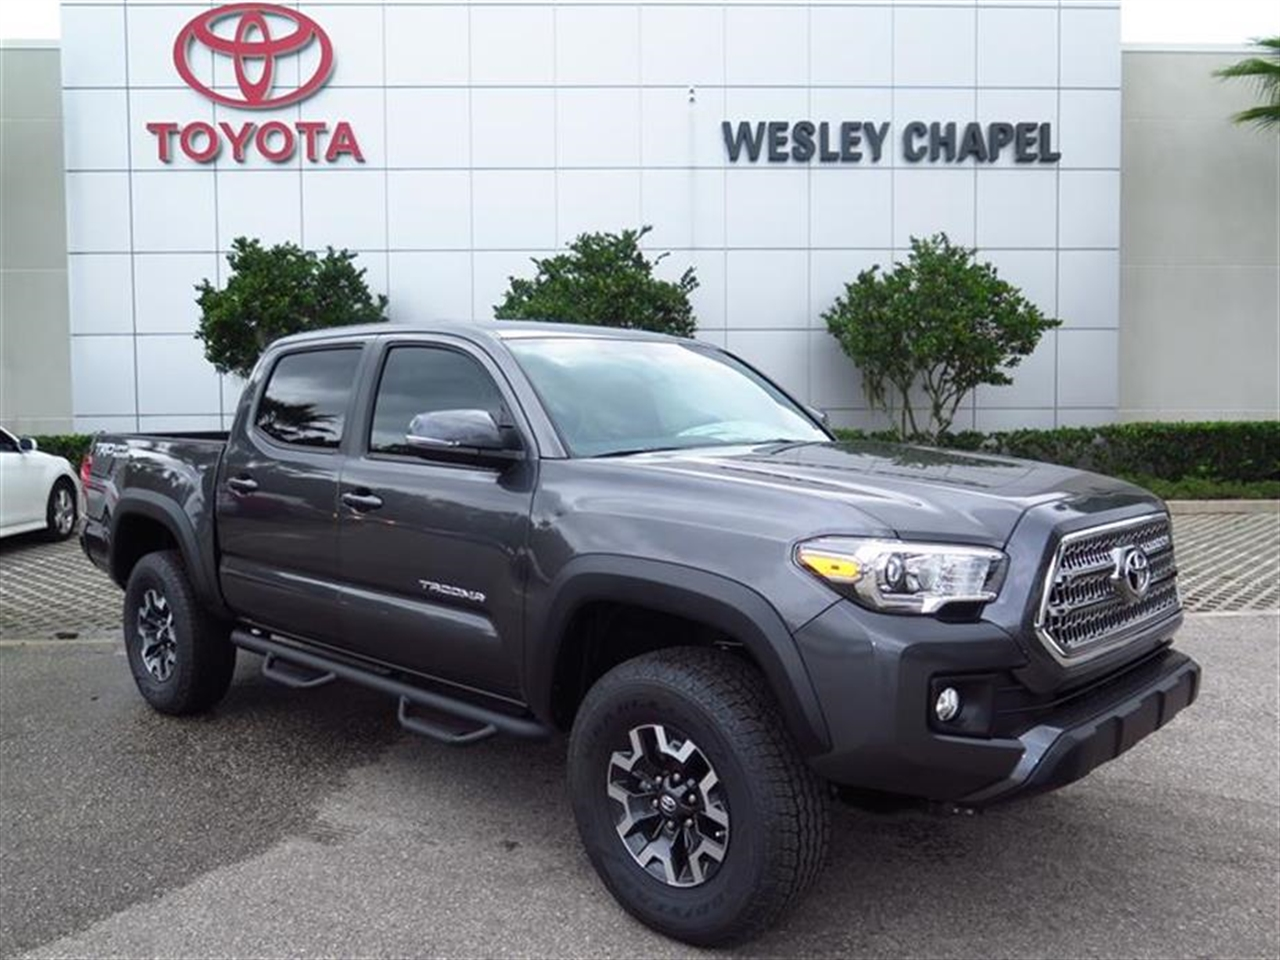 2016 TOYOTA TACOMA 2WD Double Cab V6 AT TRD Off Road 0 miles 115V400W Deck Powerpoint -inc 2- i